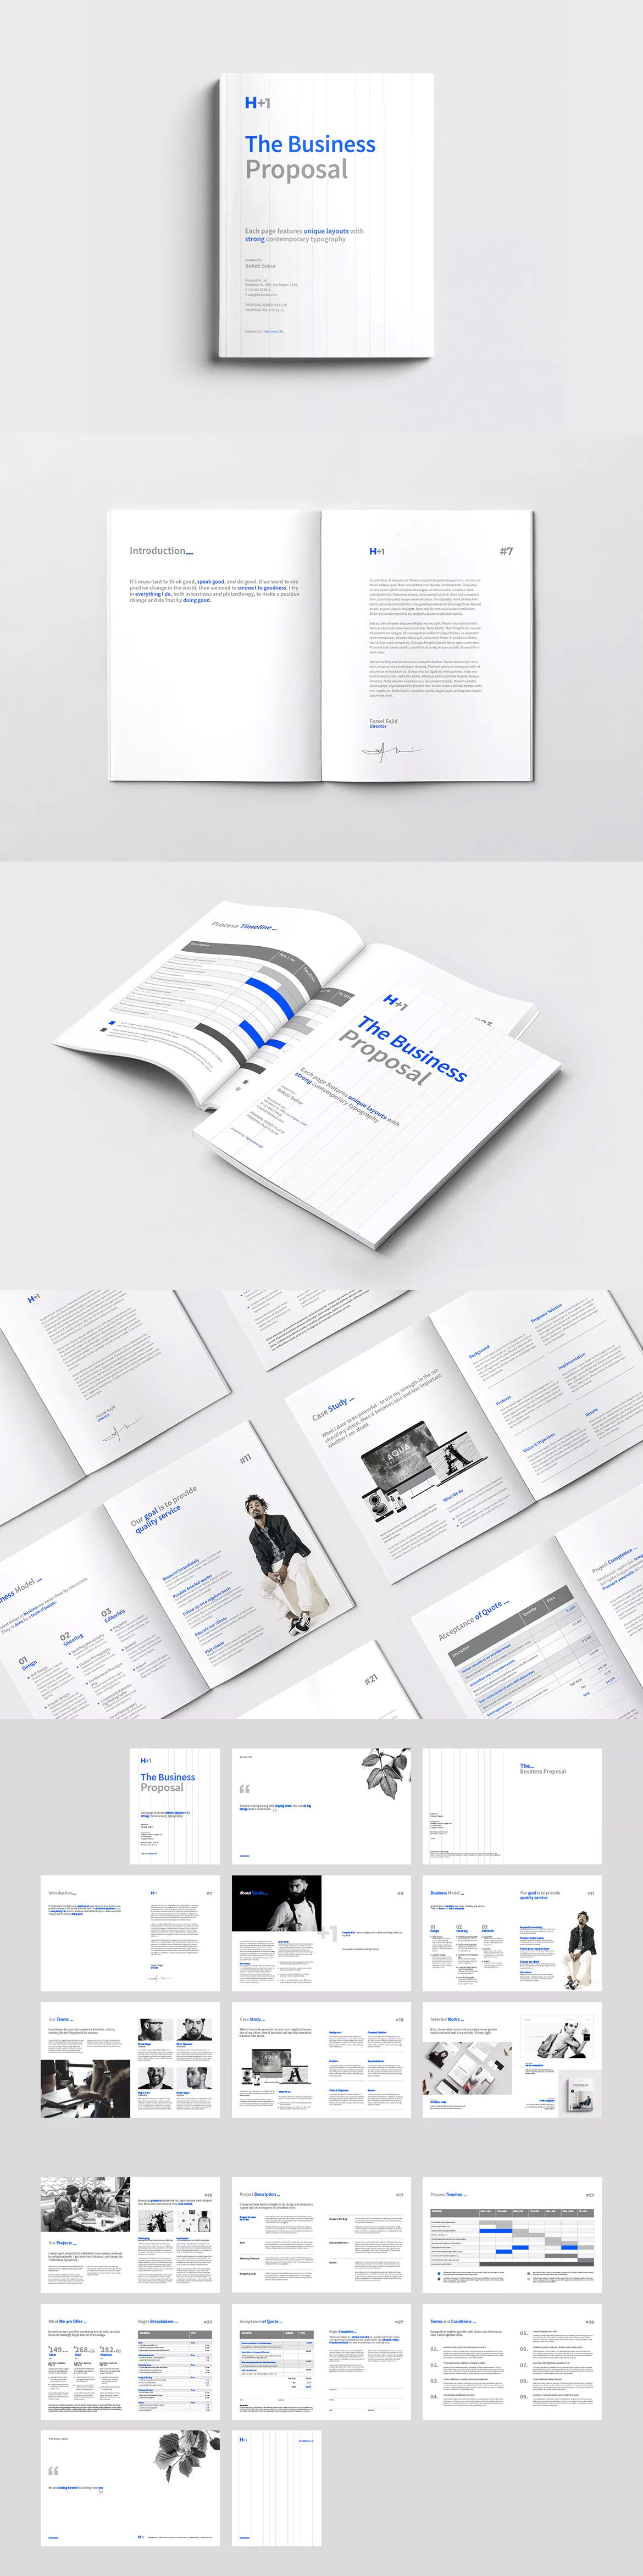 Business Proposal Template Indesign Indd A4 Us Letter Size